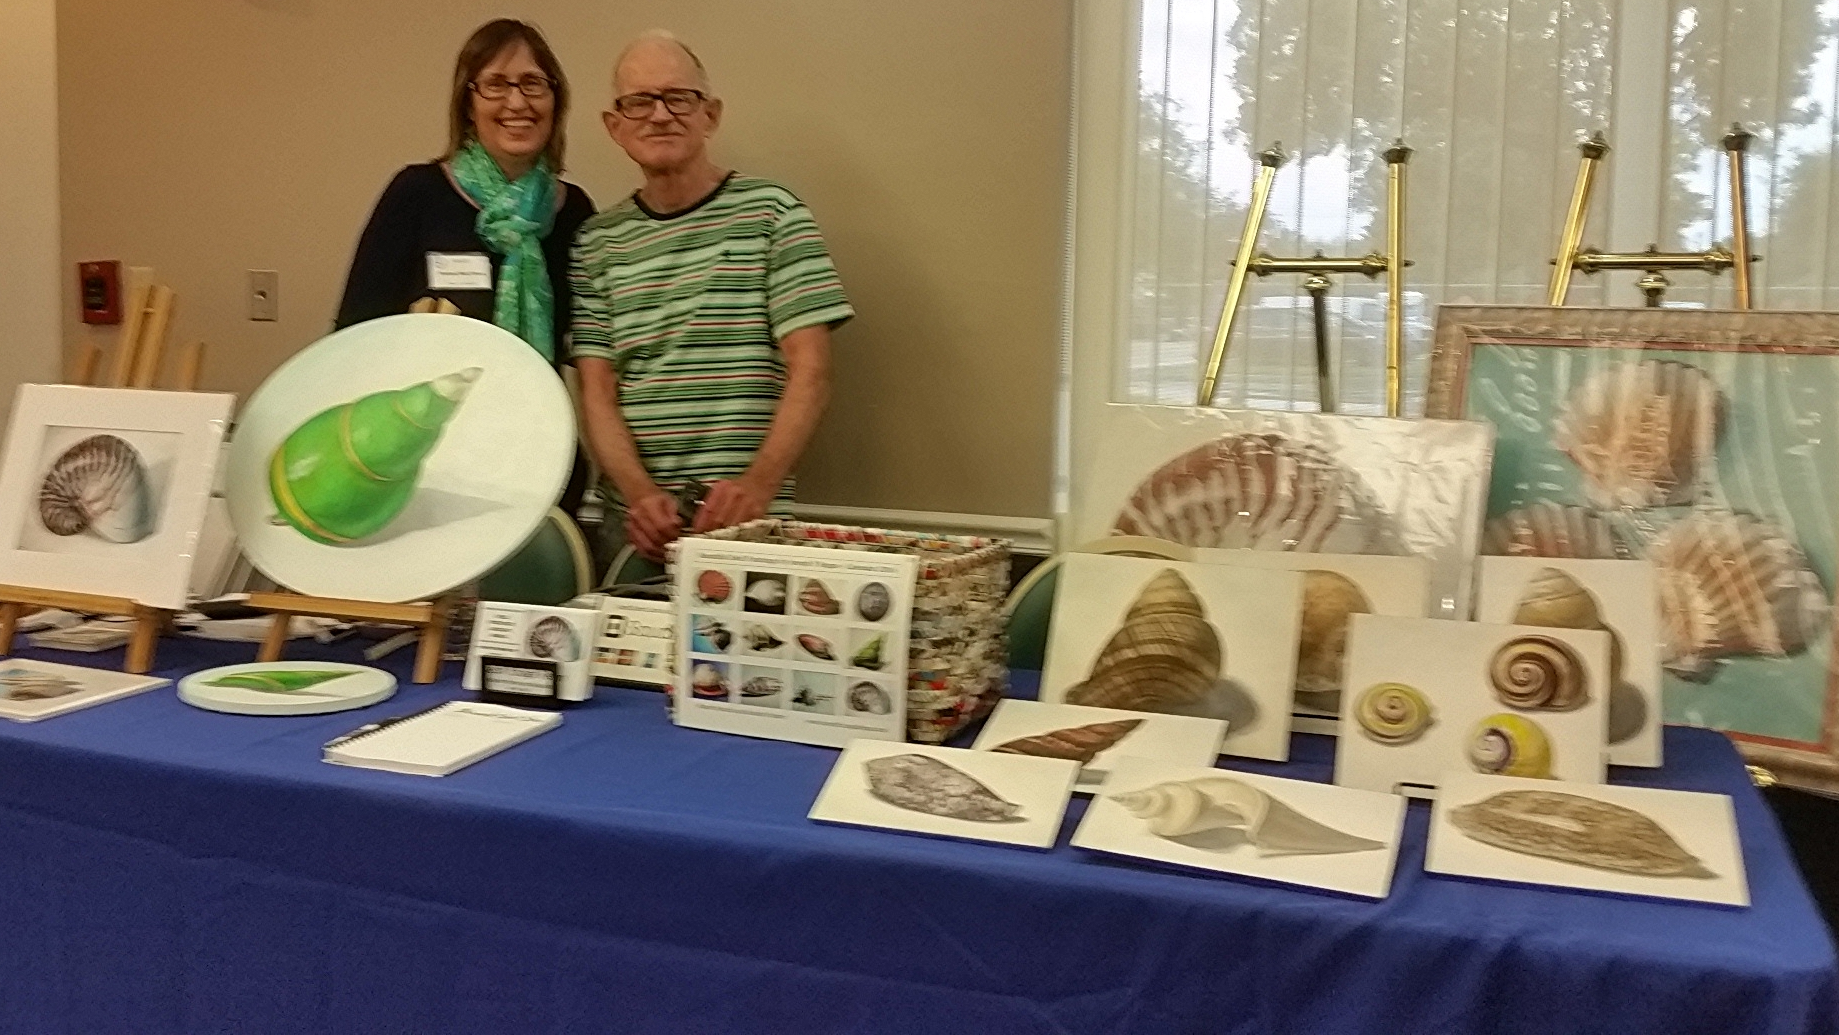 My Shell painting display at the show with business partner Tristina Dietz Elmes.